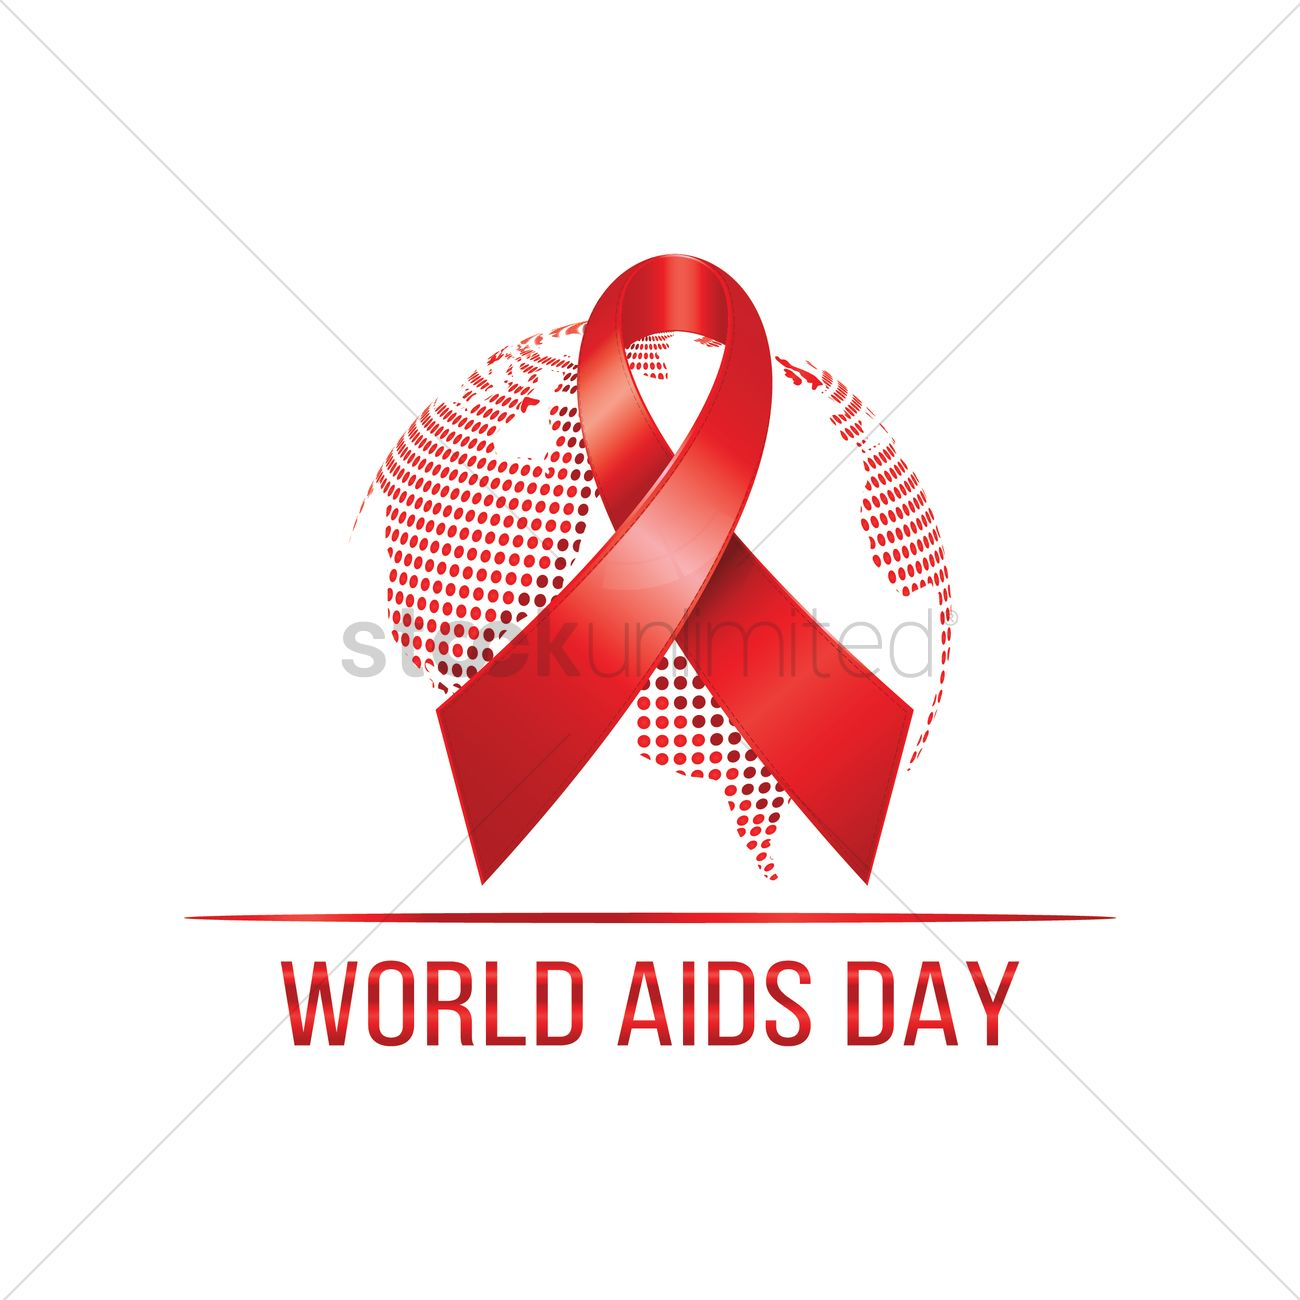 World aids day awareness campaign design Vector Image ...